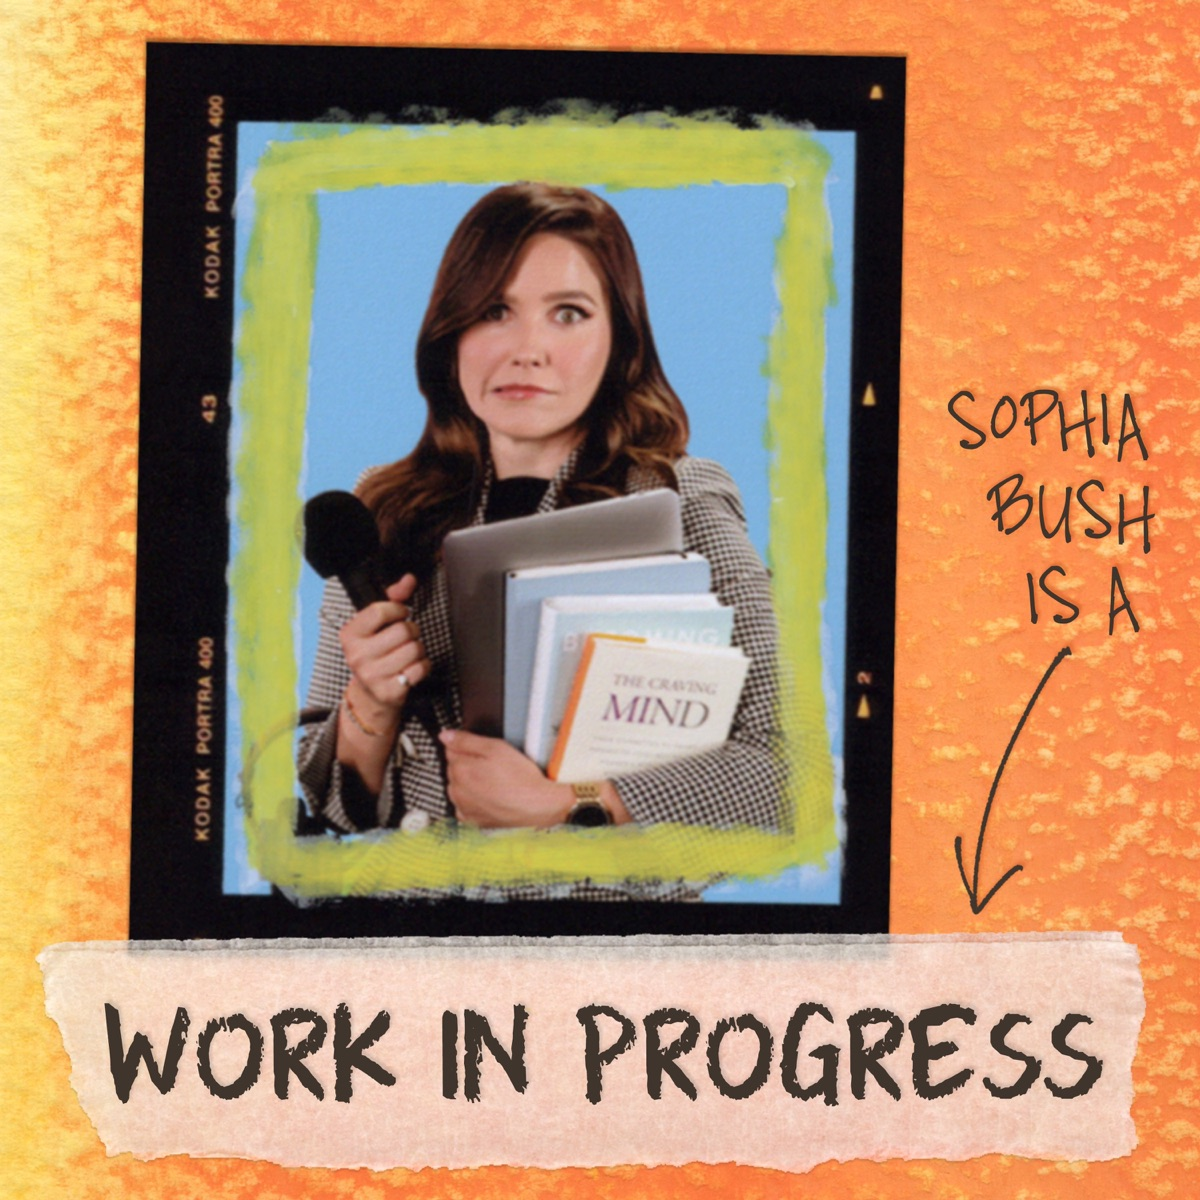 Work in Progress with Sophia Bush